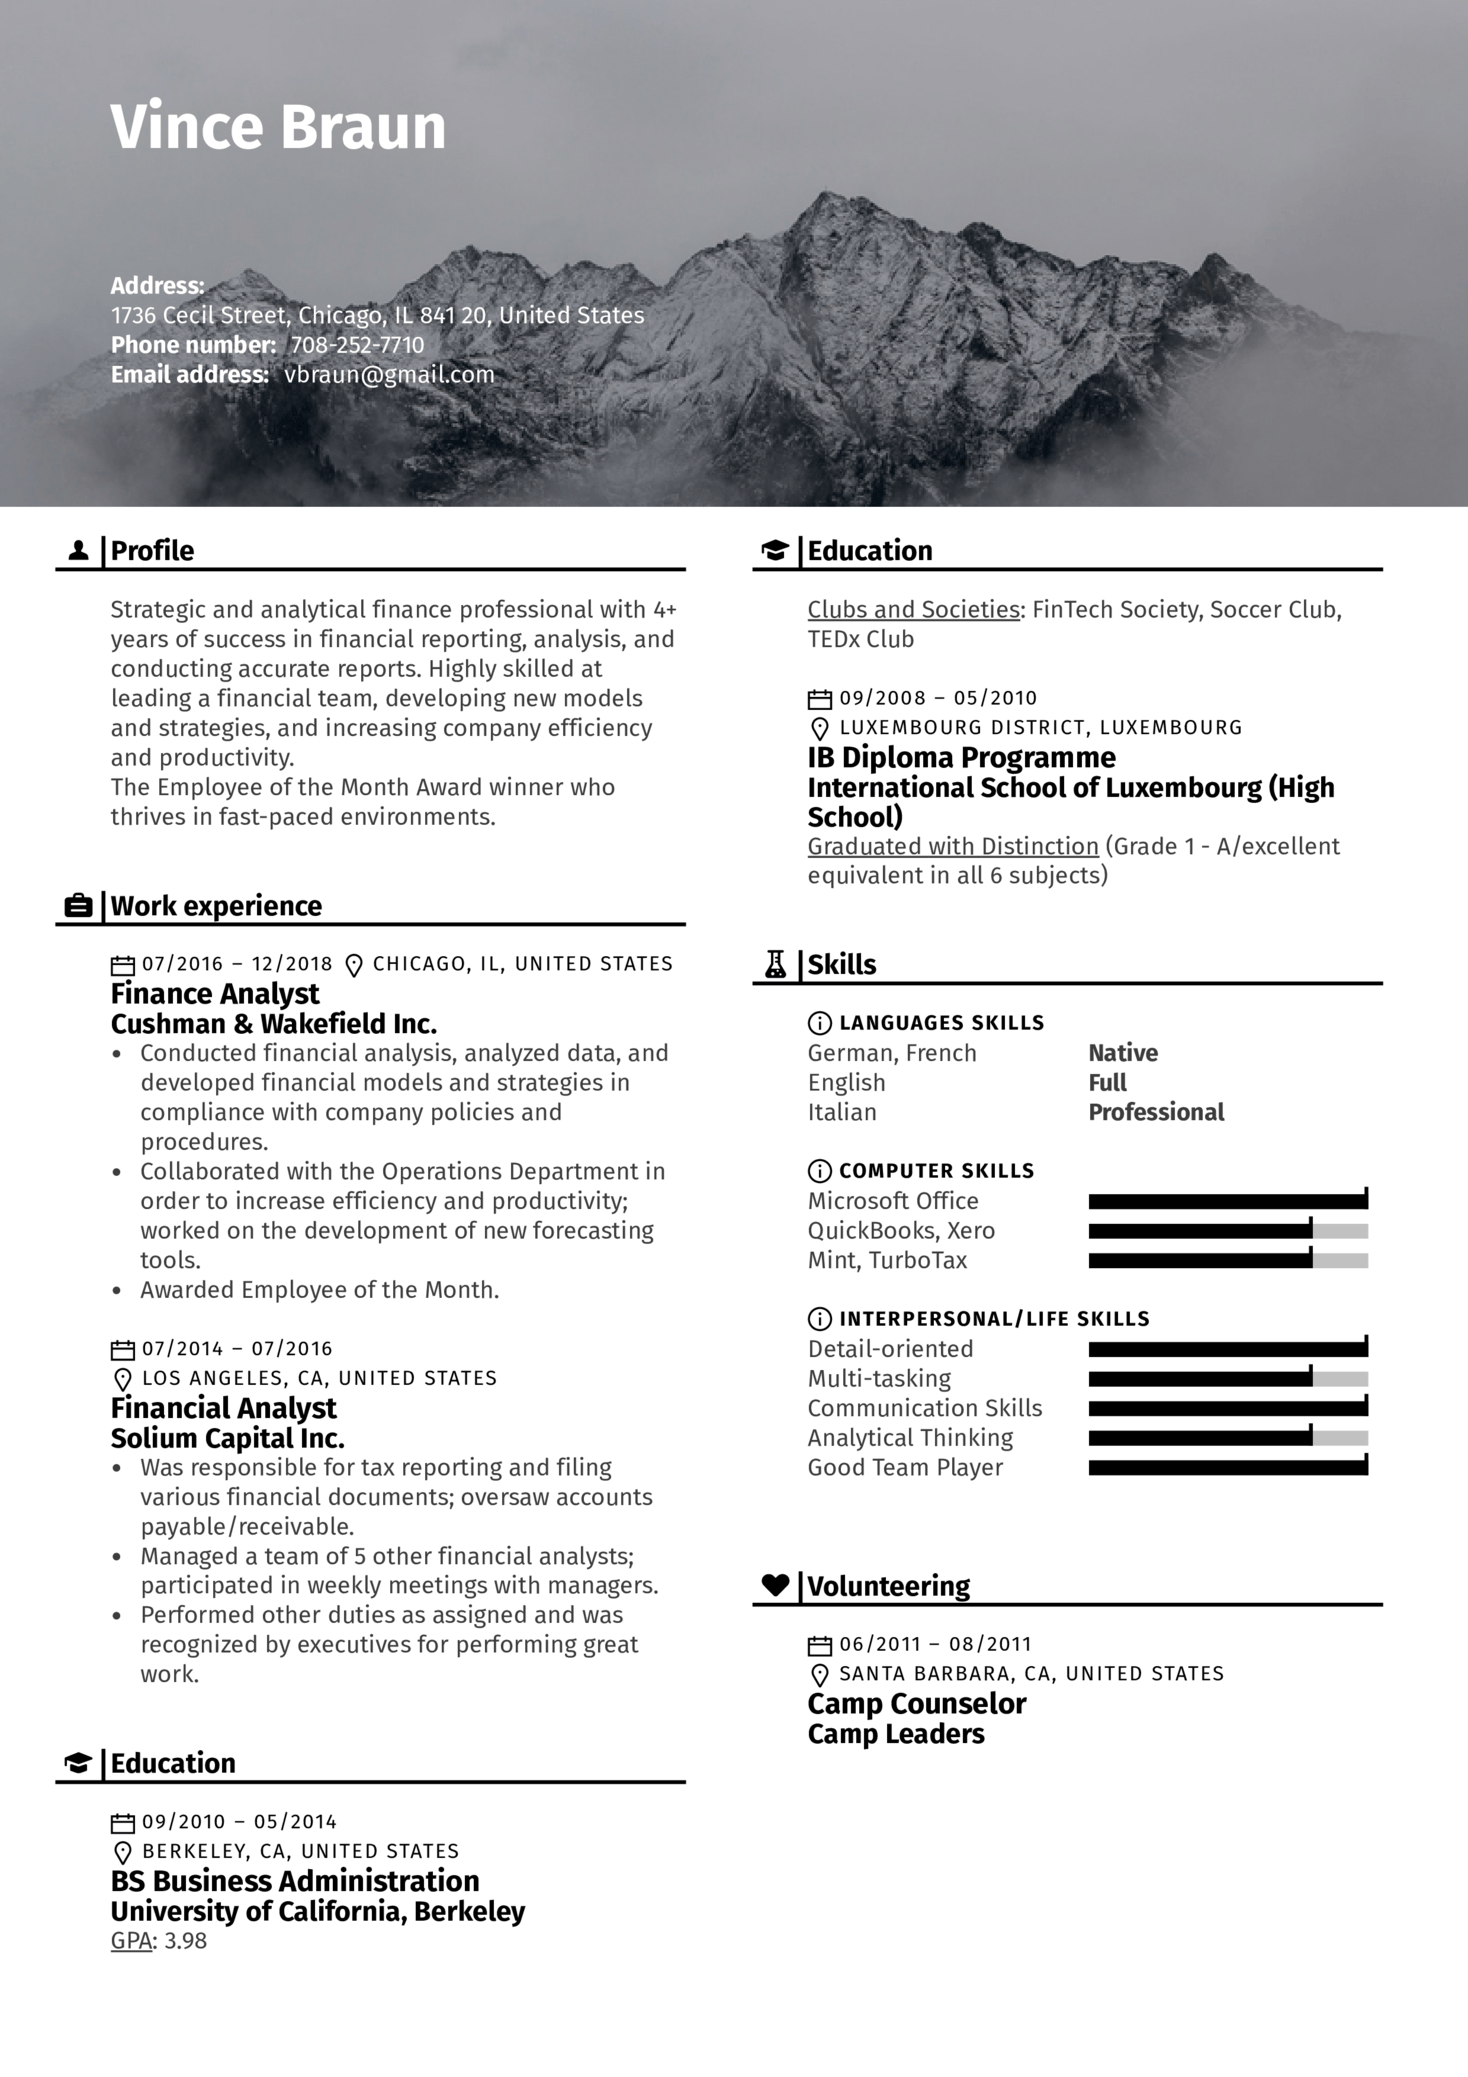 Financial Analyst Resume Template (Part 1)